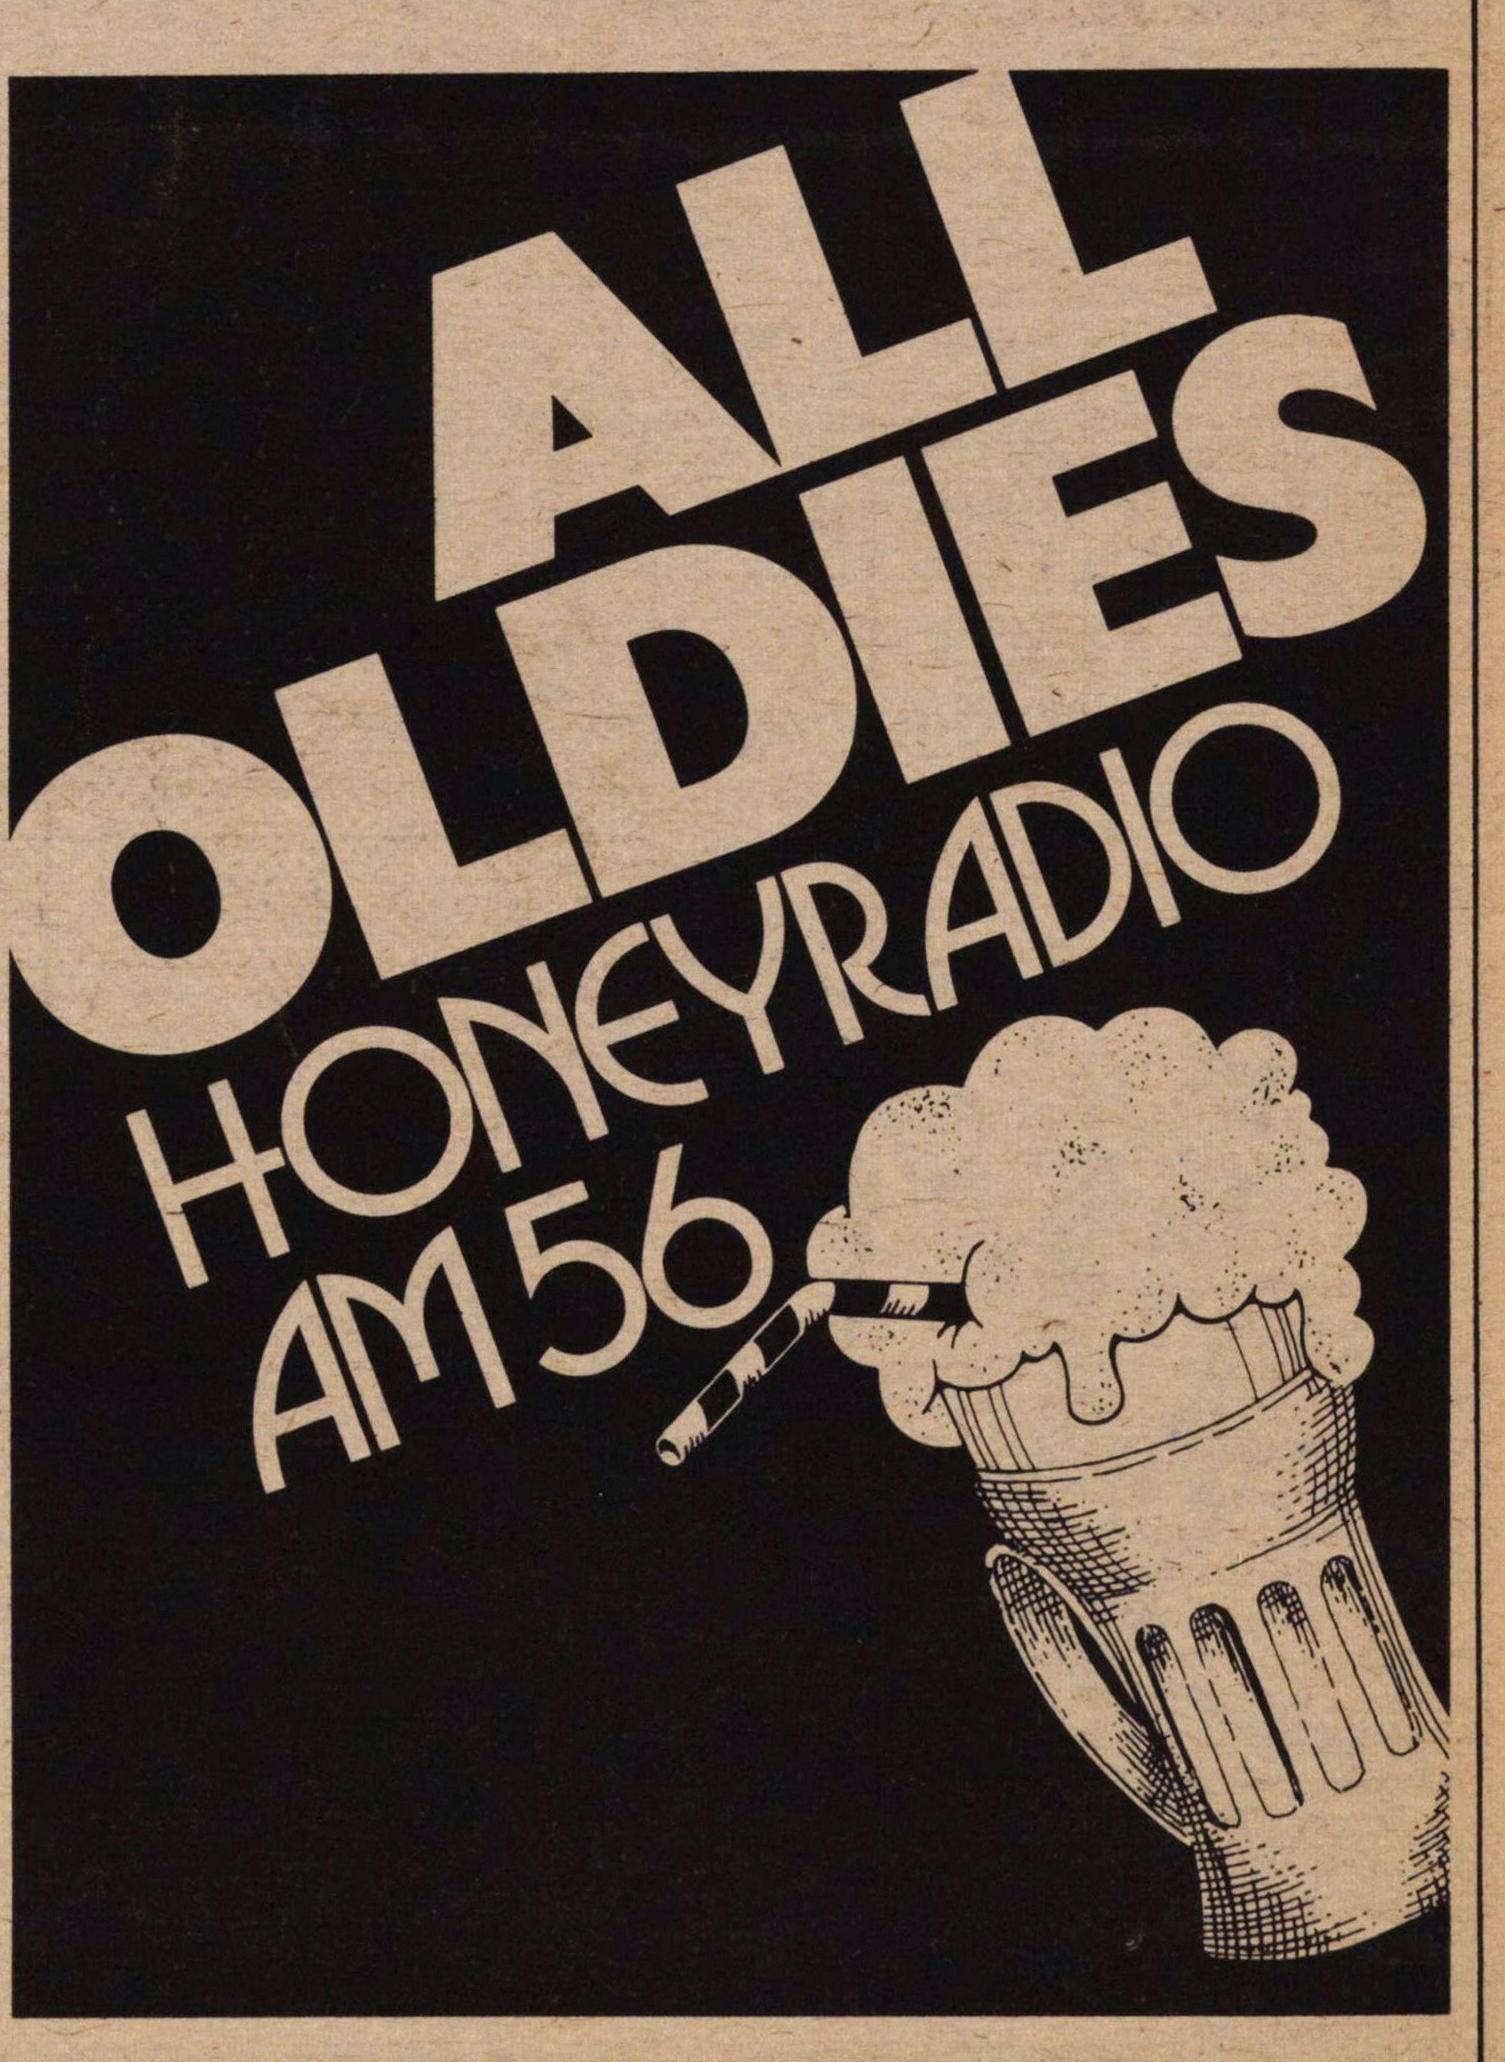 Honeyradio image